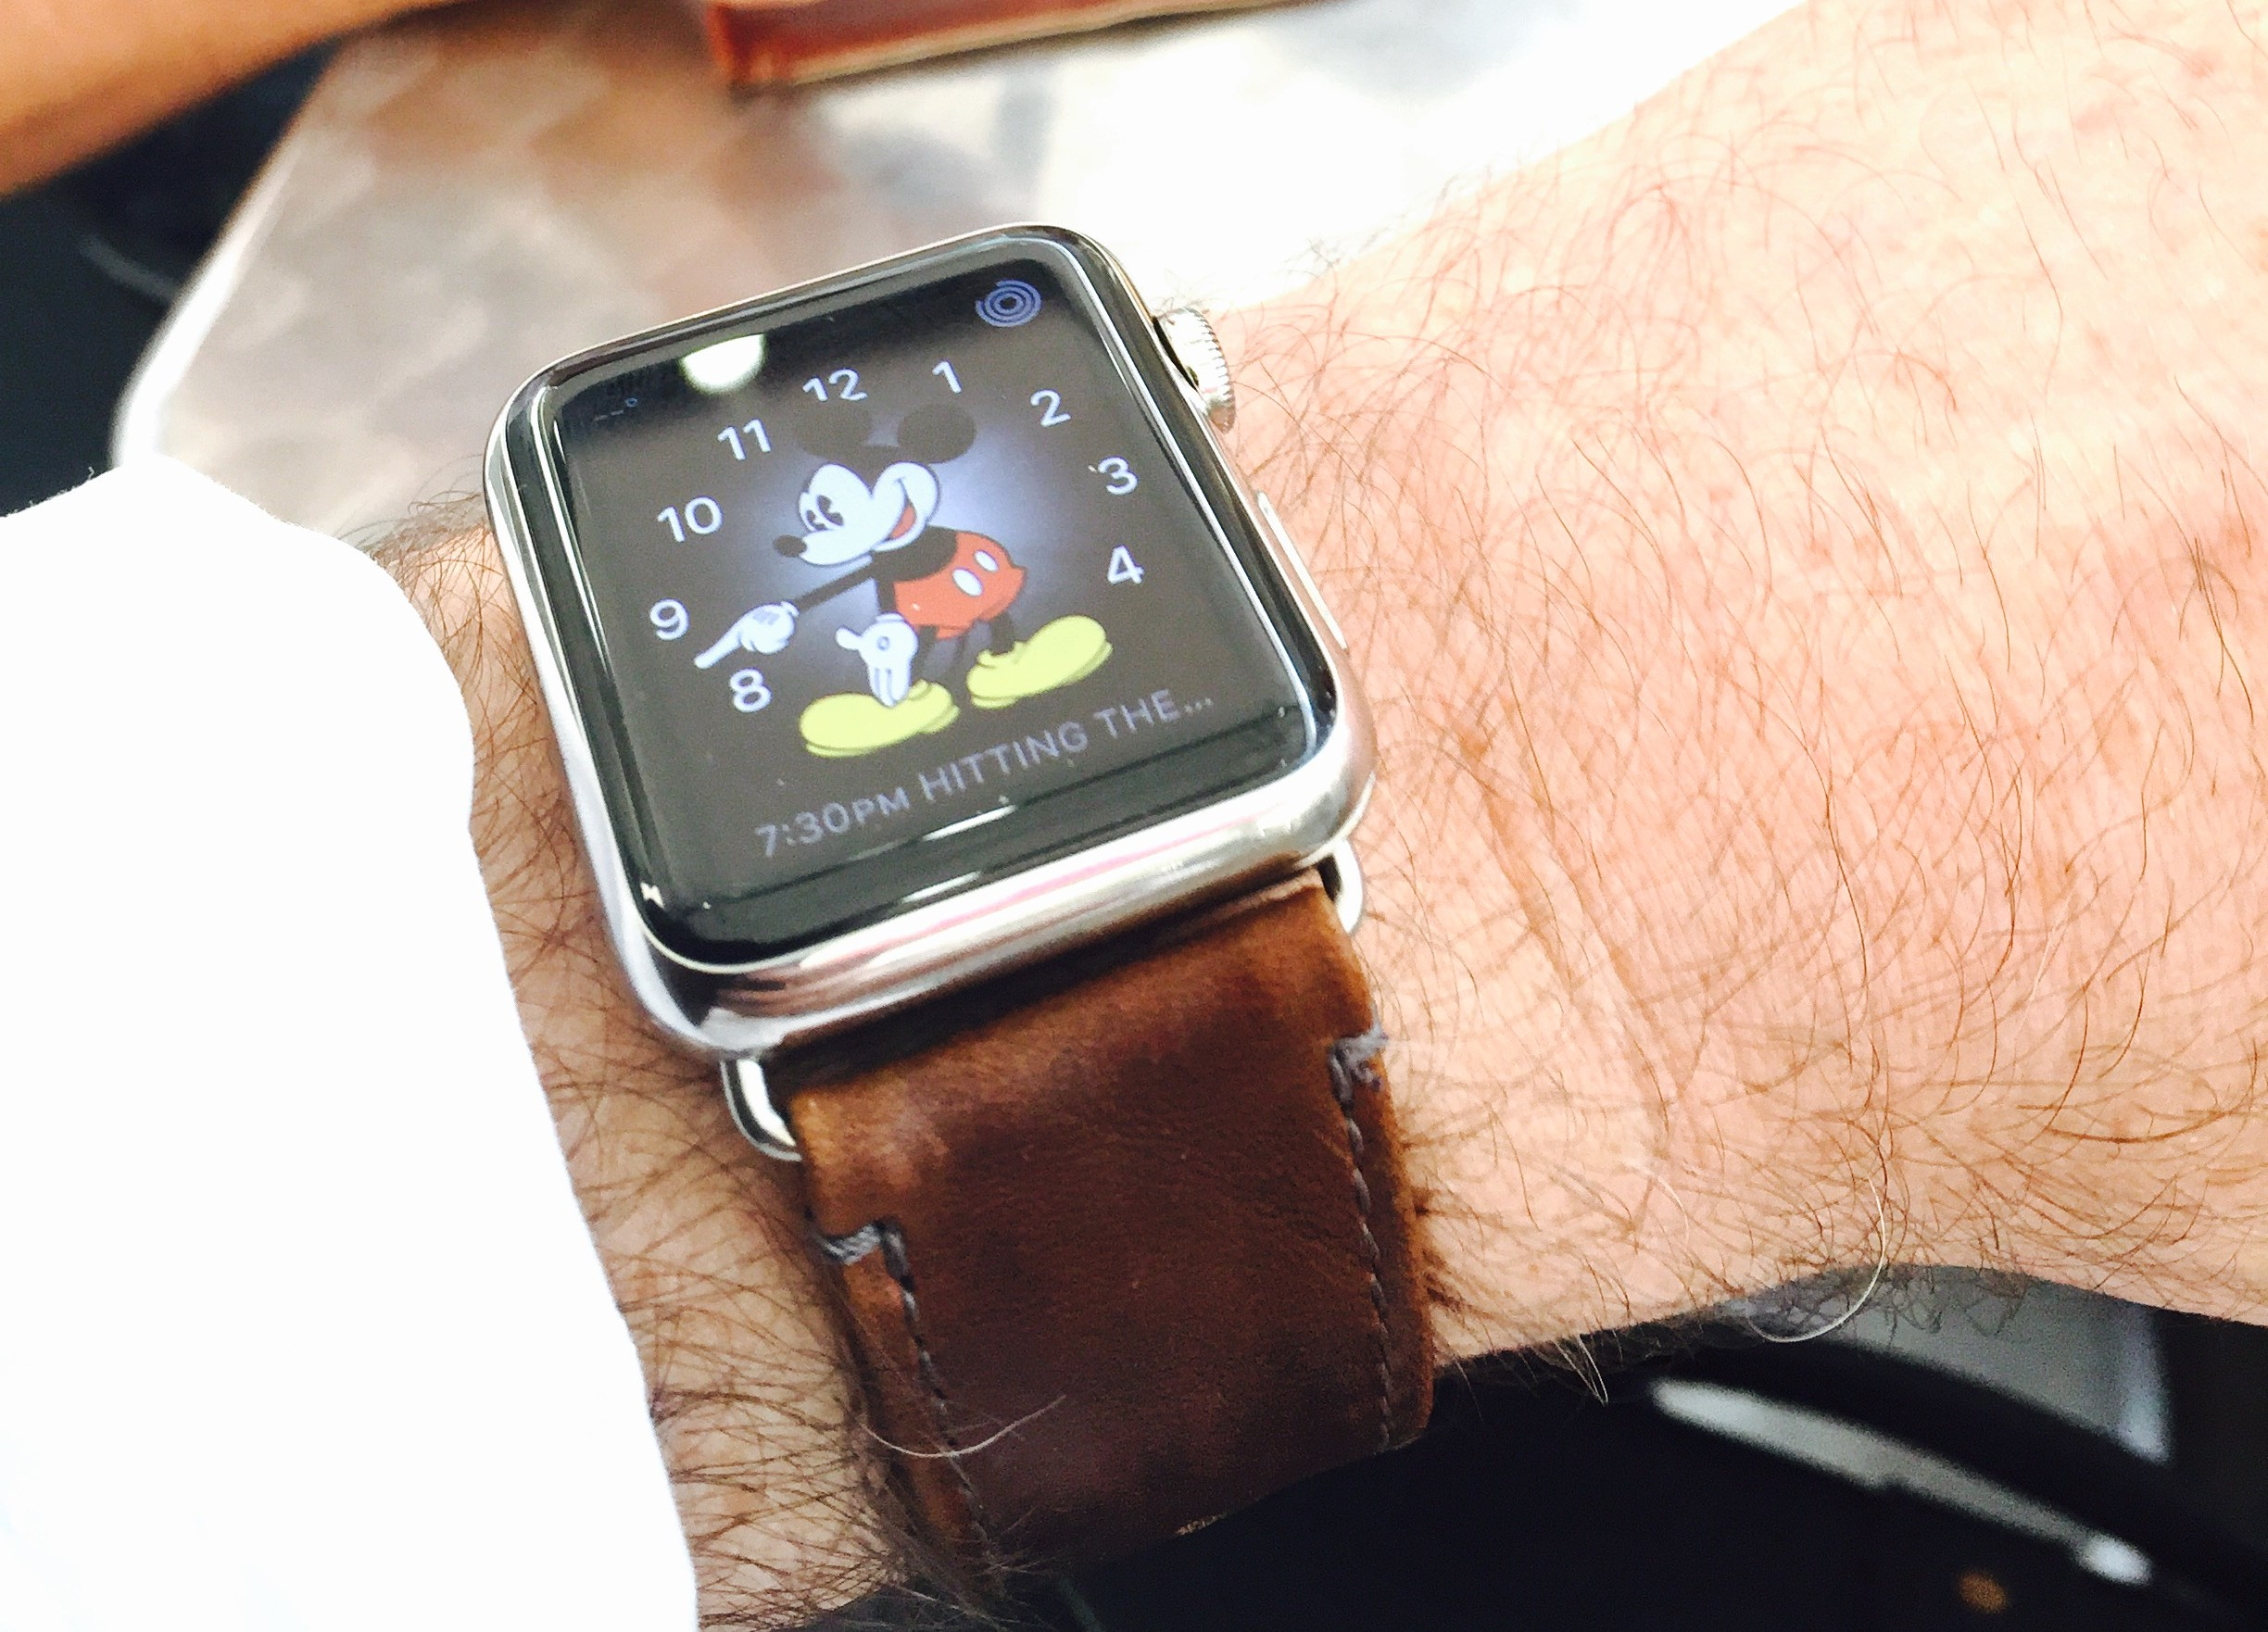 Another Apple Watch comes home